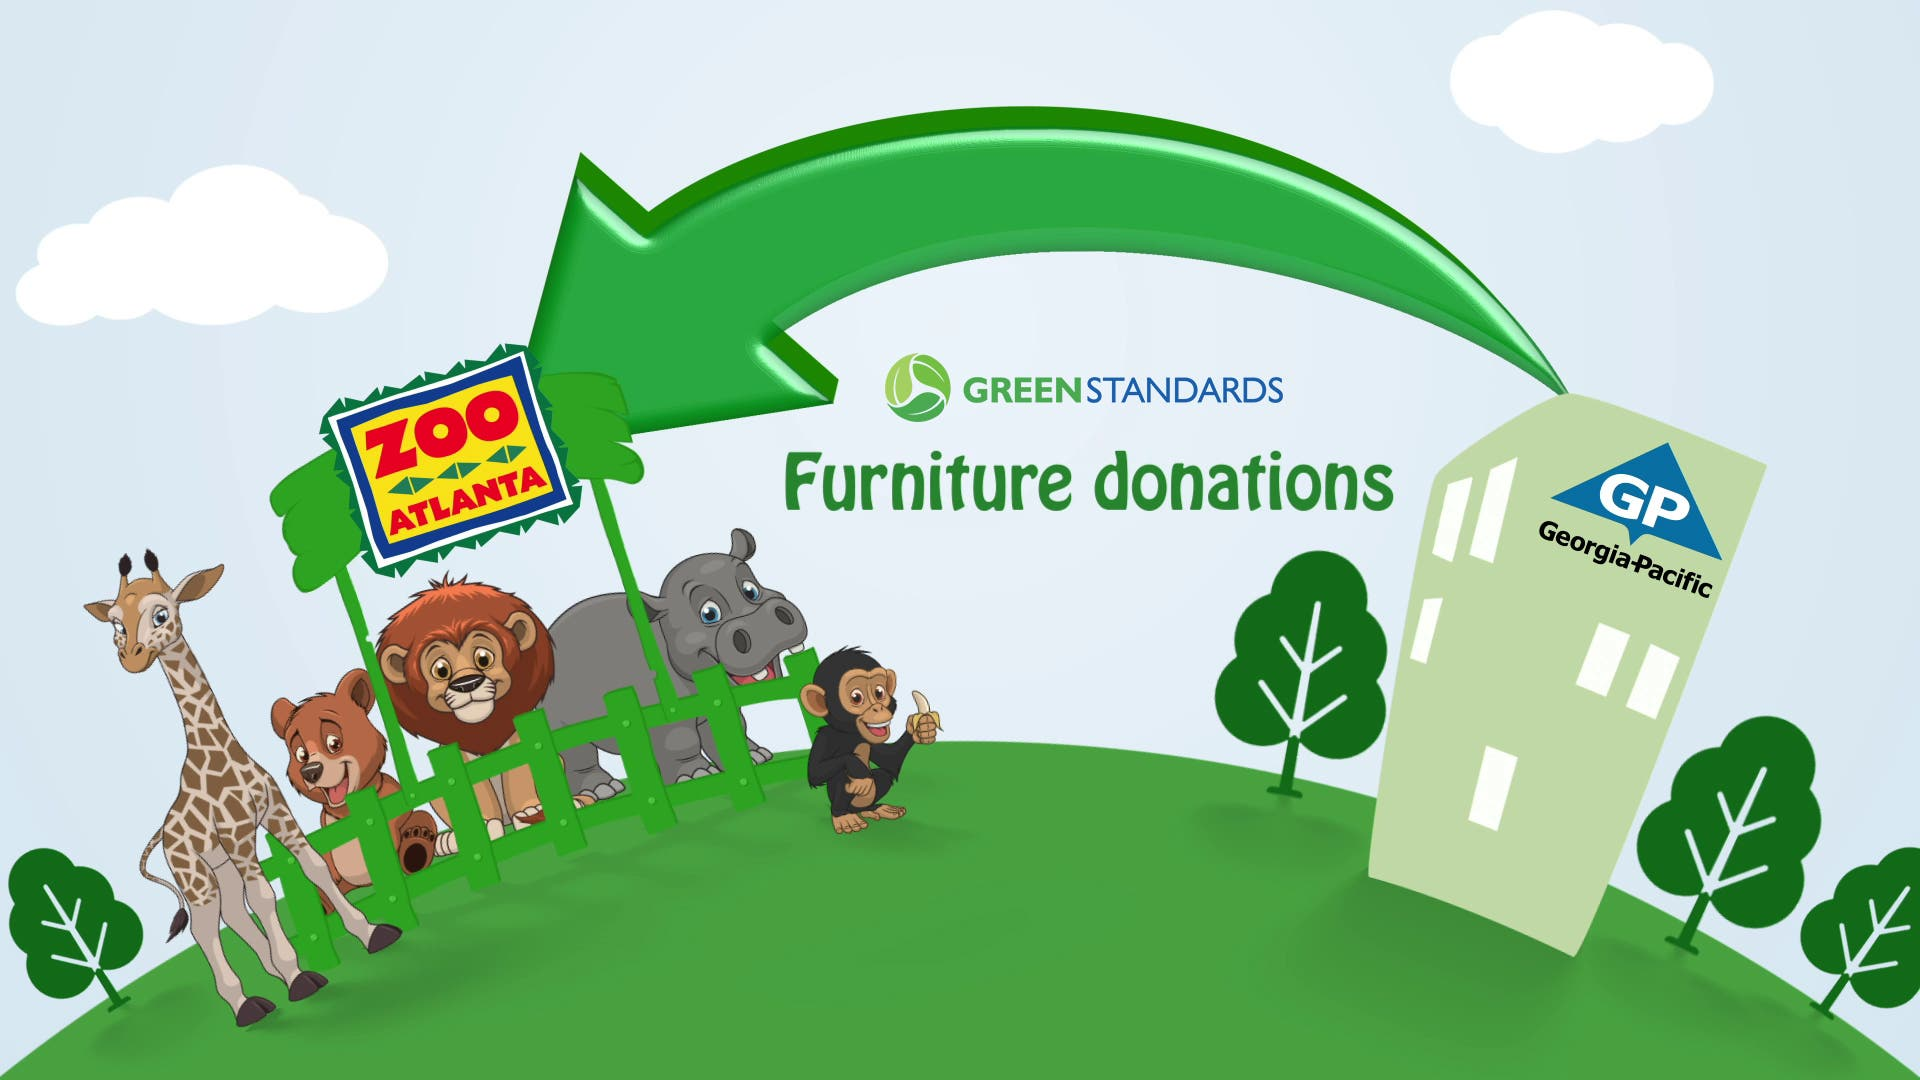 Green Standards image, used with permission